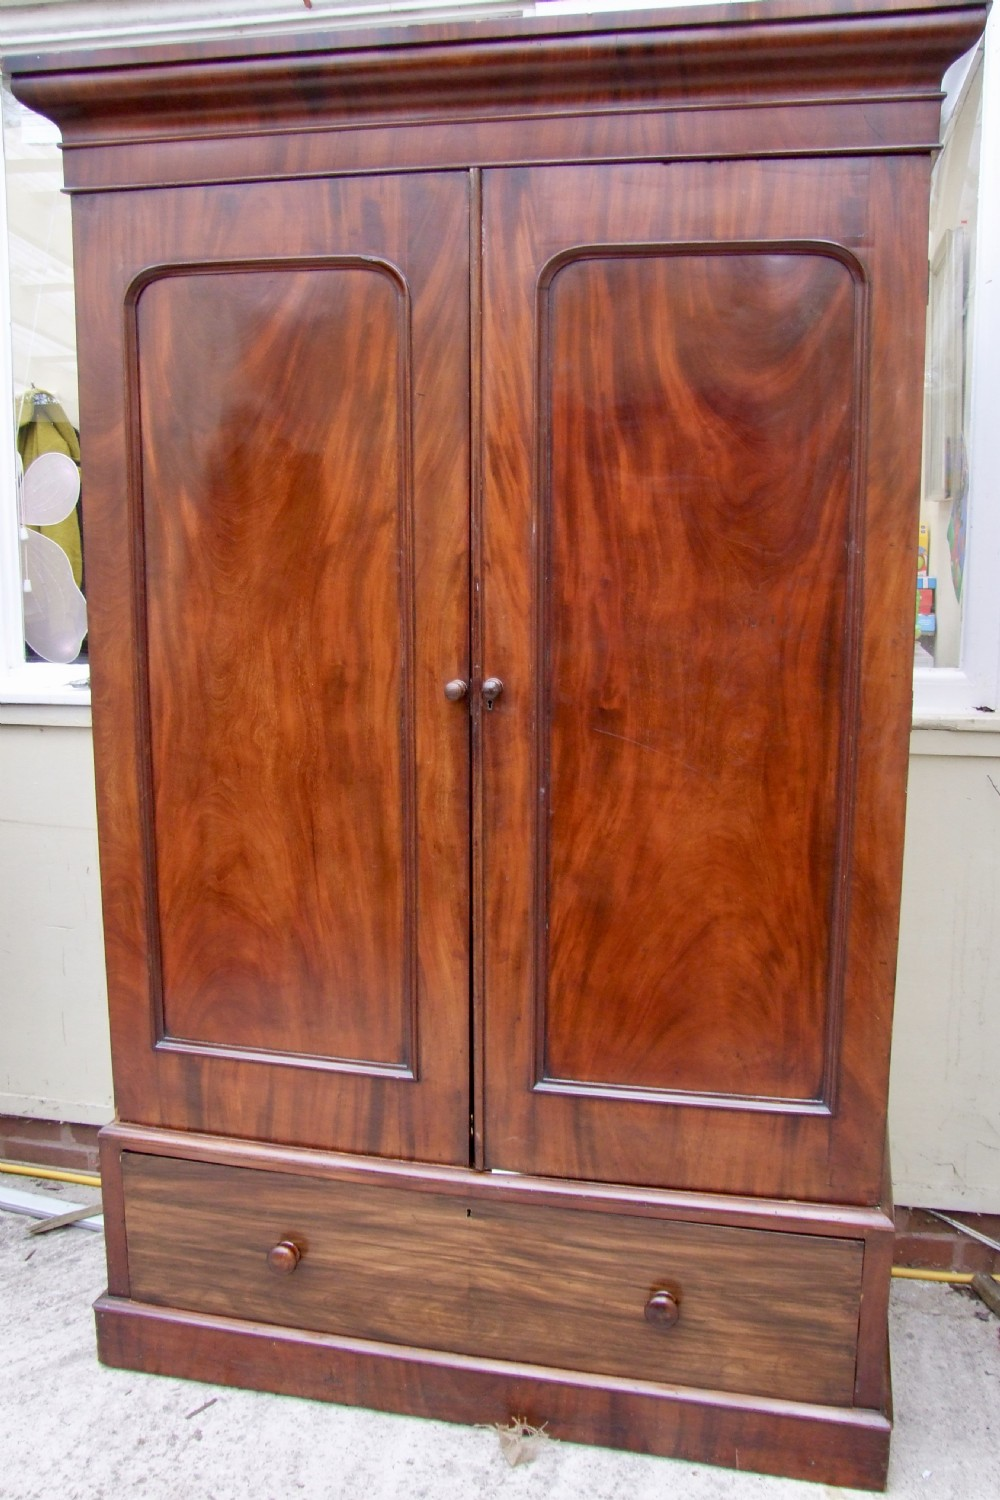 19th century fitted wardrobe in mahogany